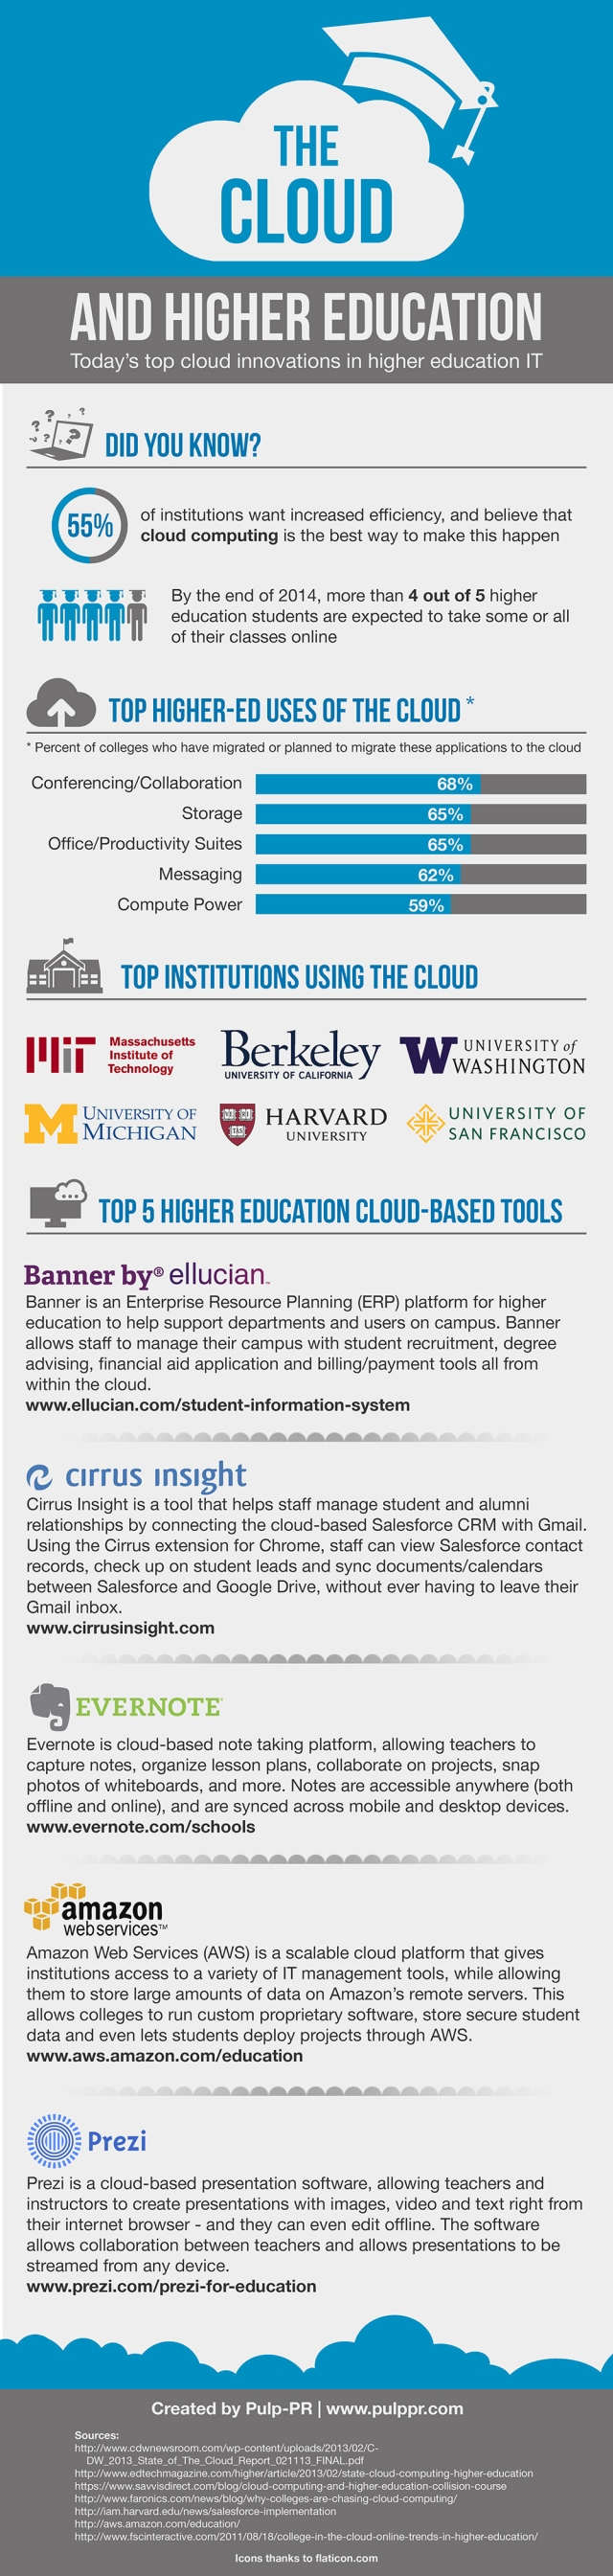 Cloud-Higher-Education-Infographic-v2_640